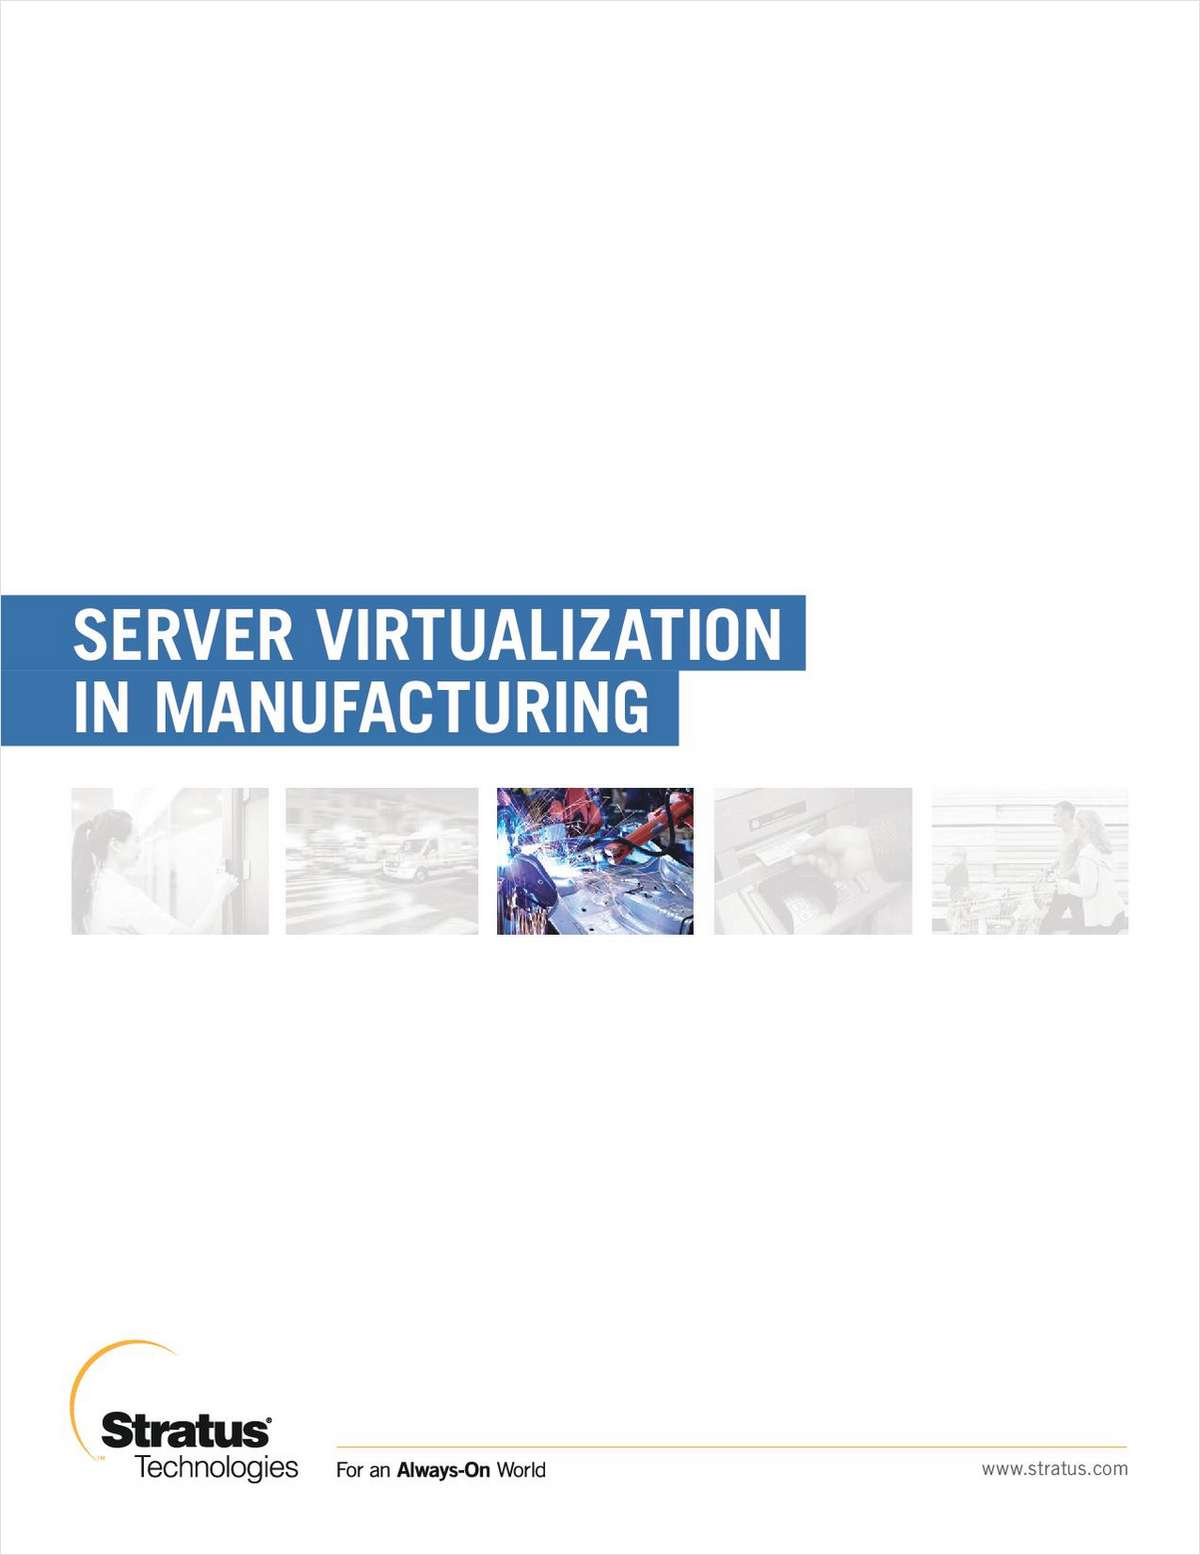 Virtualization in Manufacturing: Do's and Dont's for Mission-Critical Manufacturing